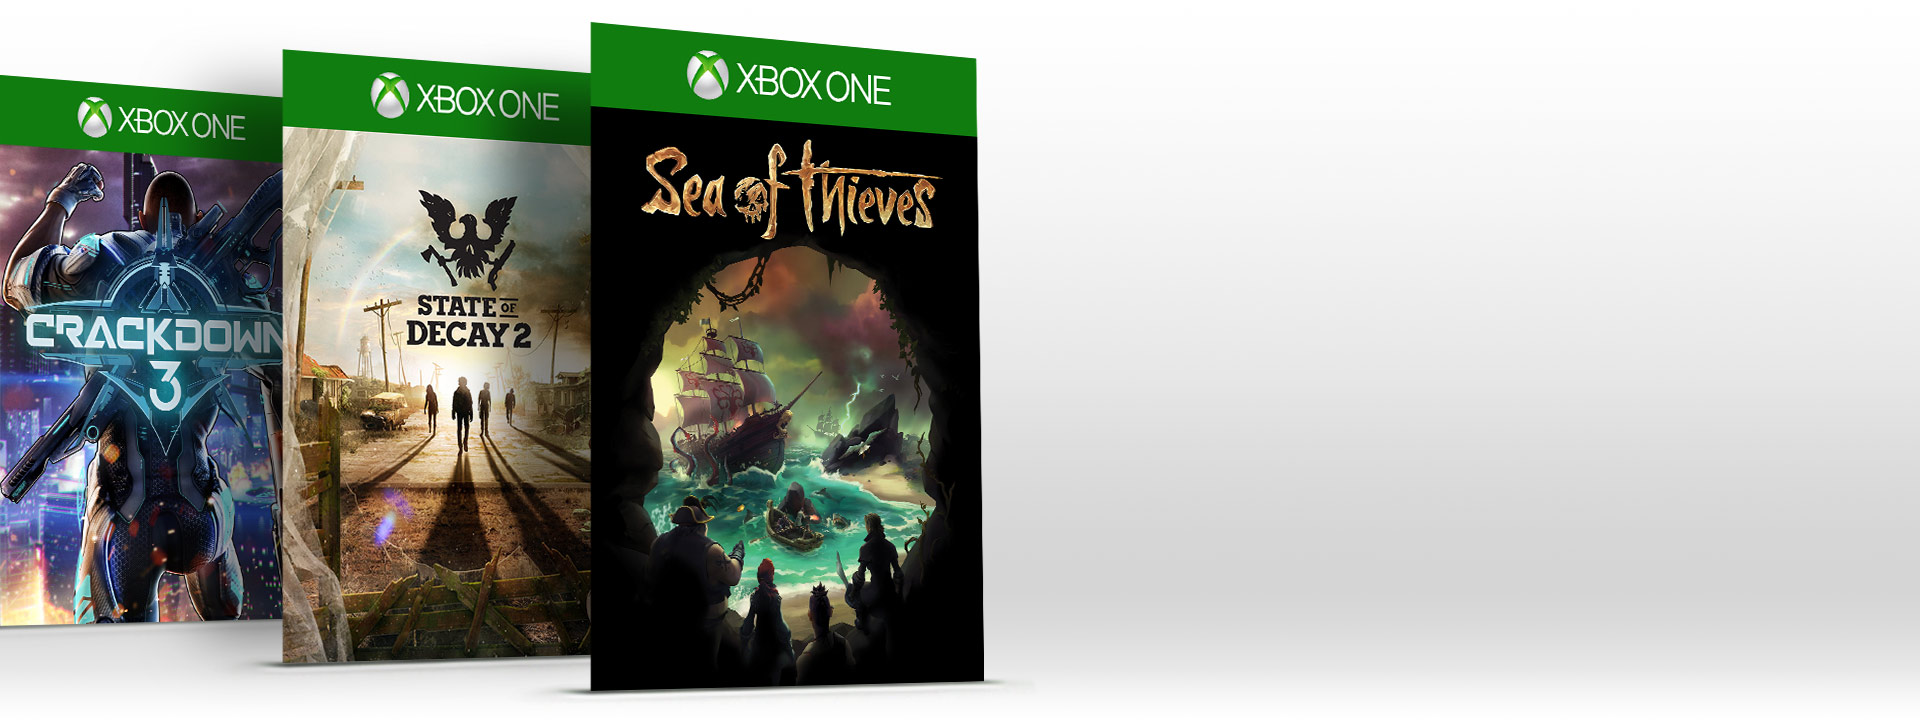 Drie Xbox-games op een rij: Sea of Thieves, State of Decay 2 en Crackdown 3